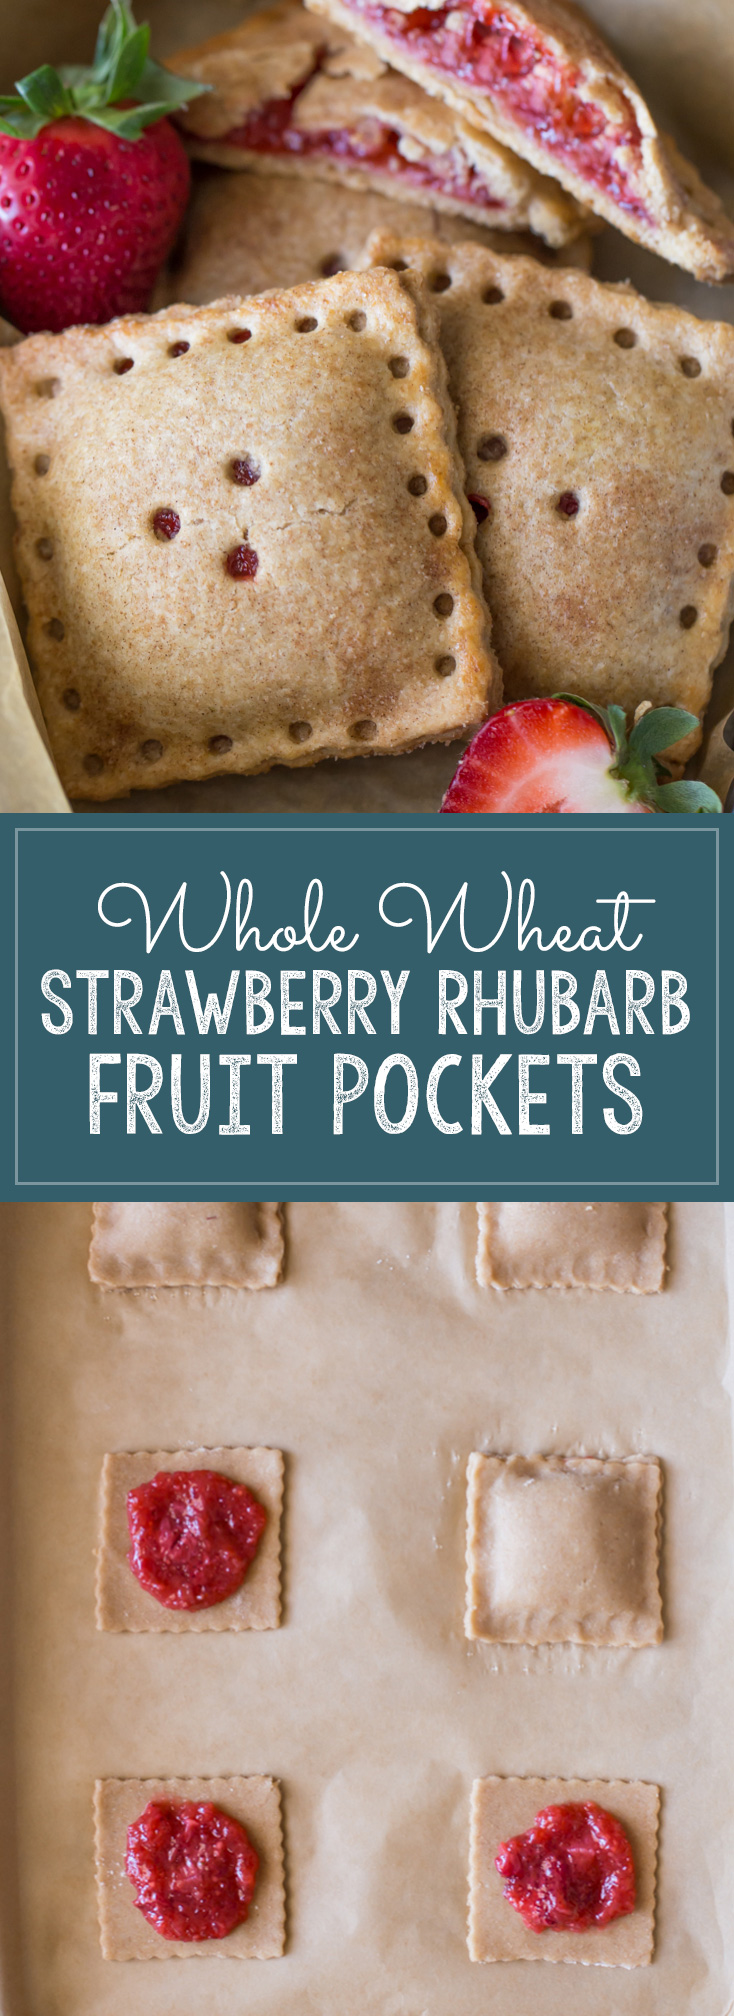 Whole Wheat Strawberry Rhubarb Fruit Pocket - A tasty, kid-friendly, portable fruit pocket made with a whole wheat crust and fresh strawberries and rhubarb.